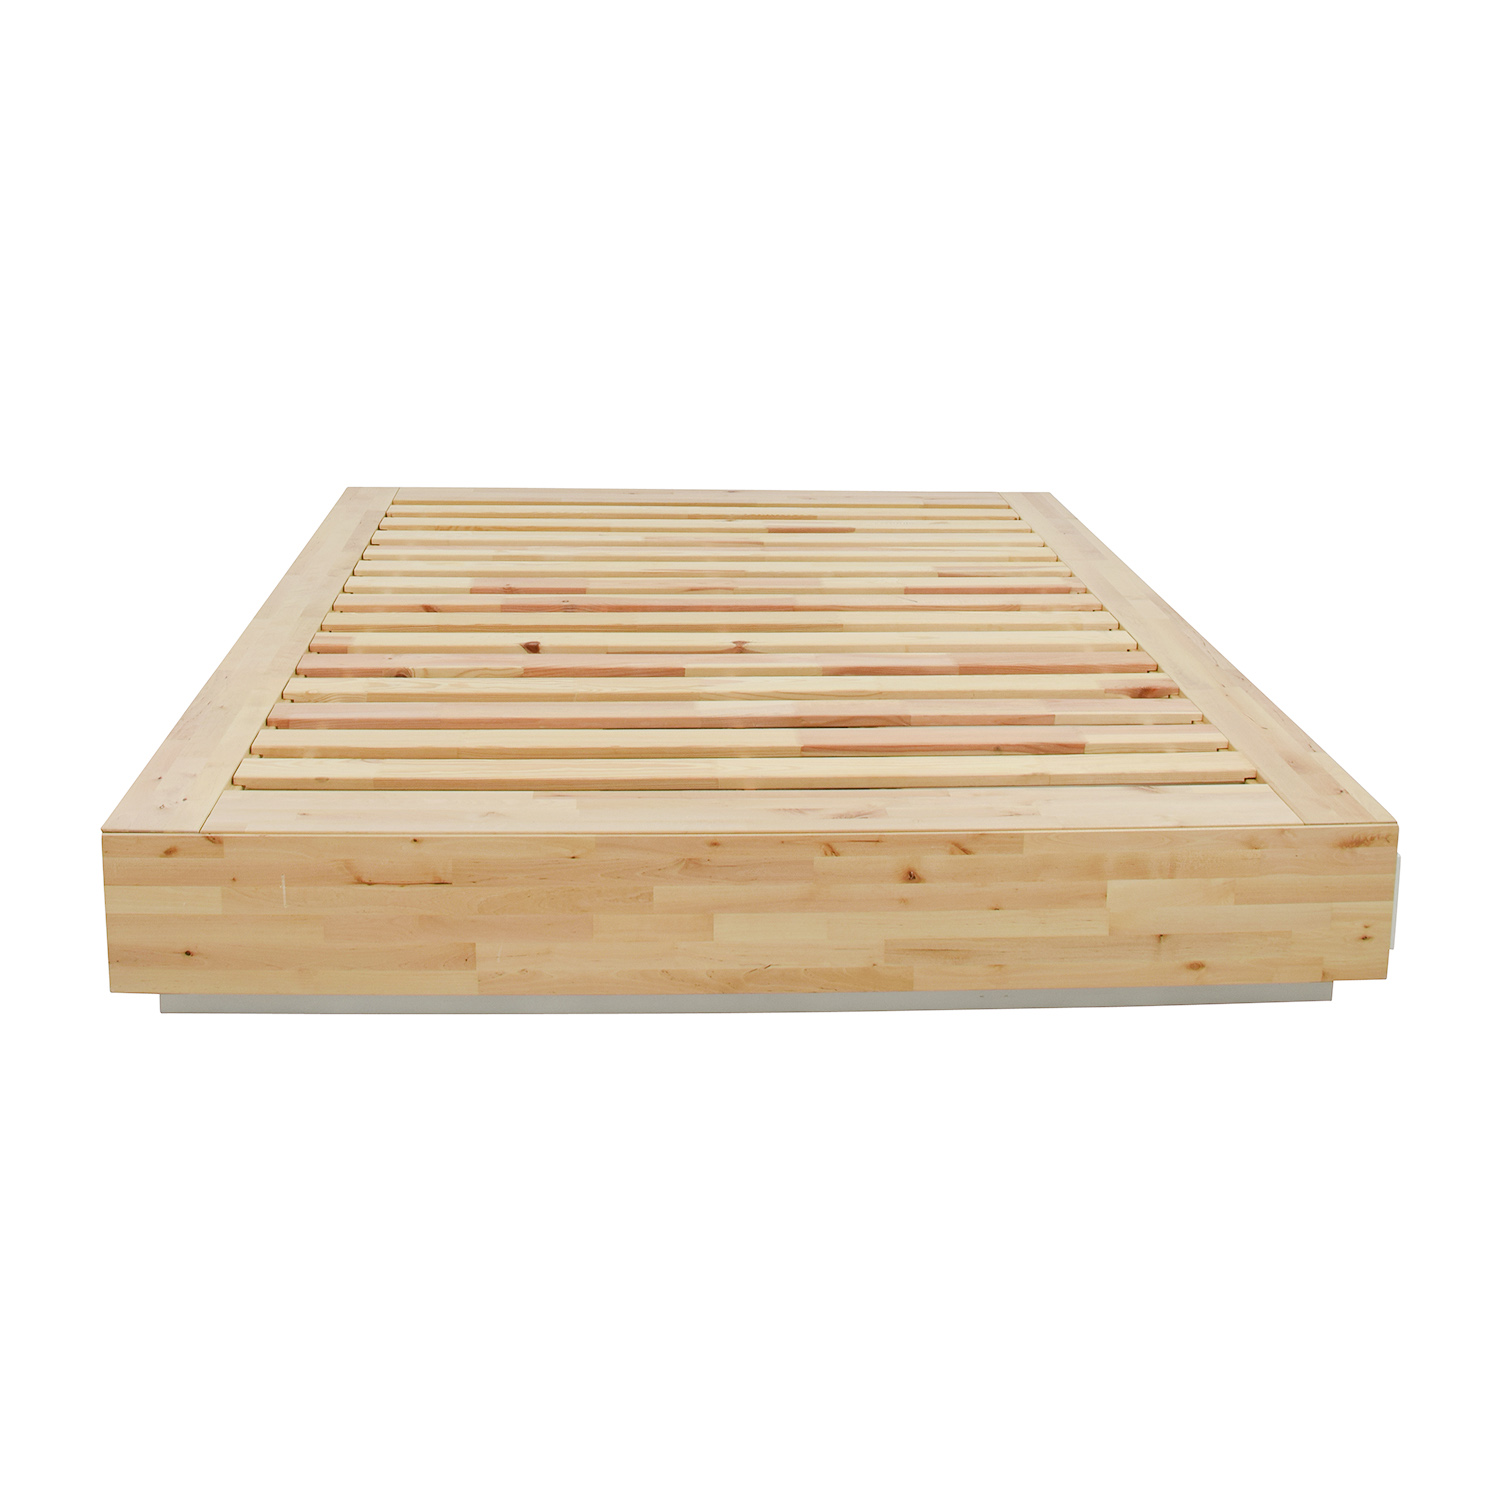 Queen Bed Sale 35 Off Ikea Birch Wood Queen Bed Frame With Storage Beds